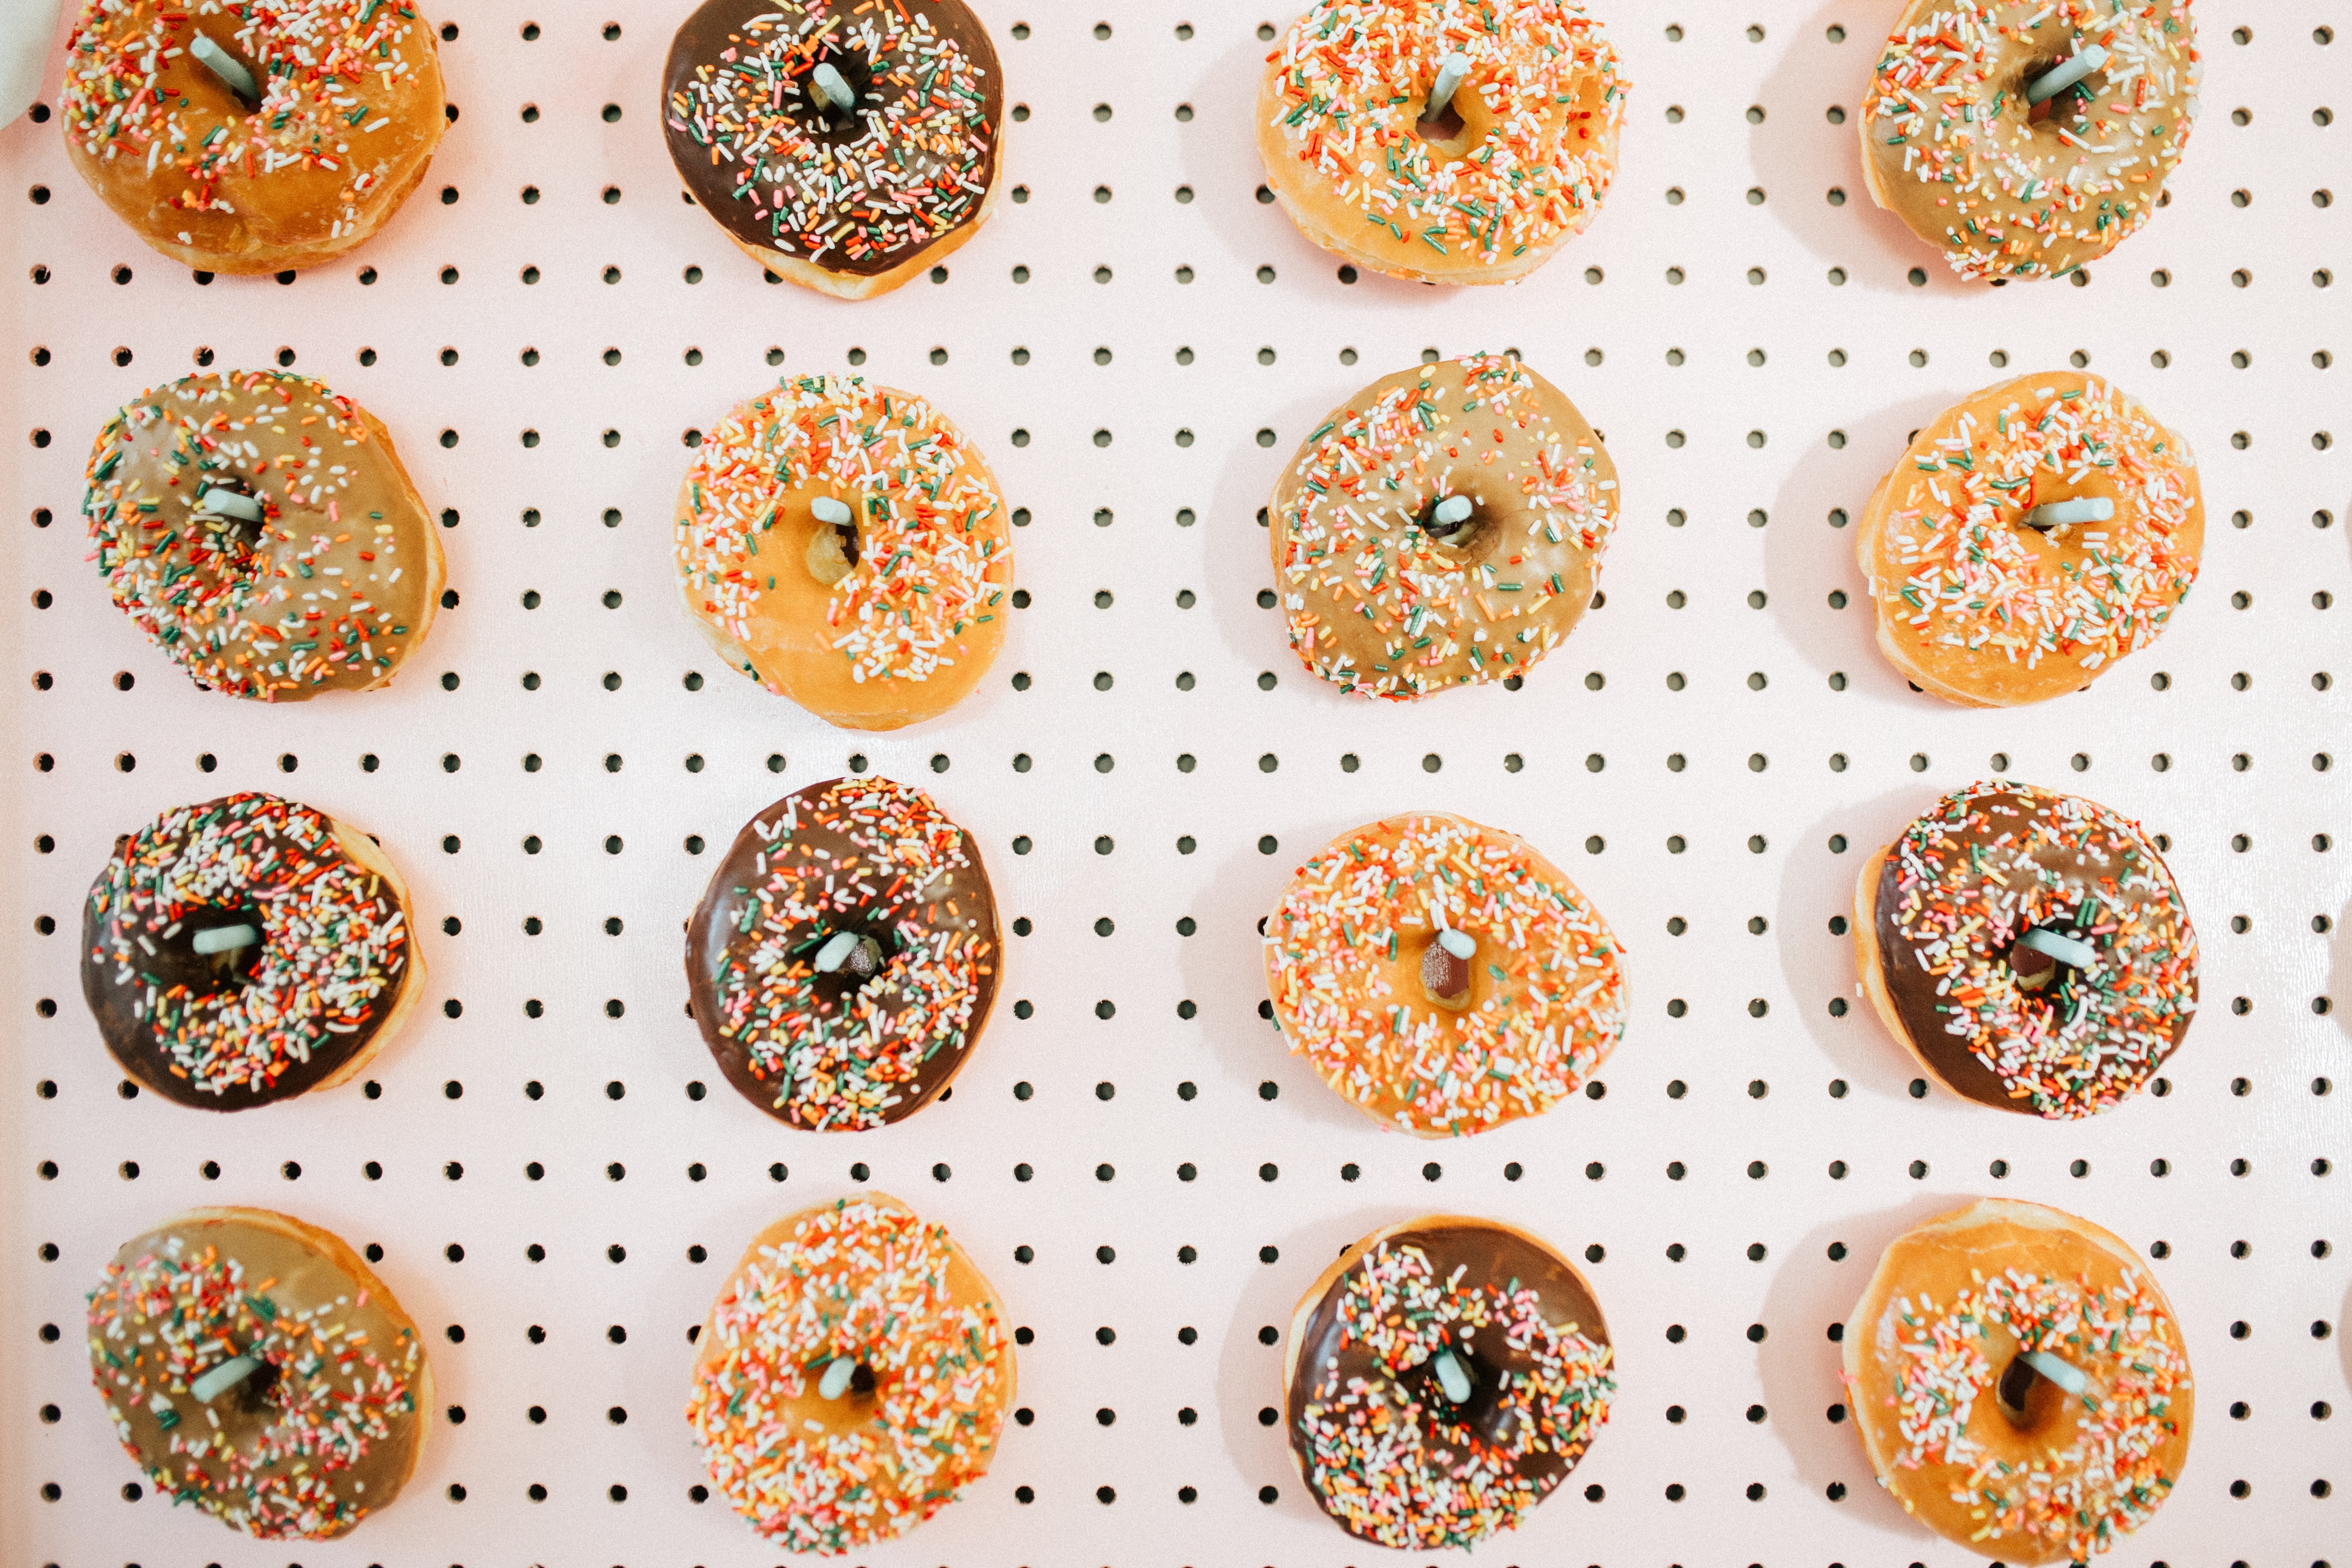 closeup photo of doughnut with toppings